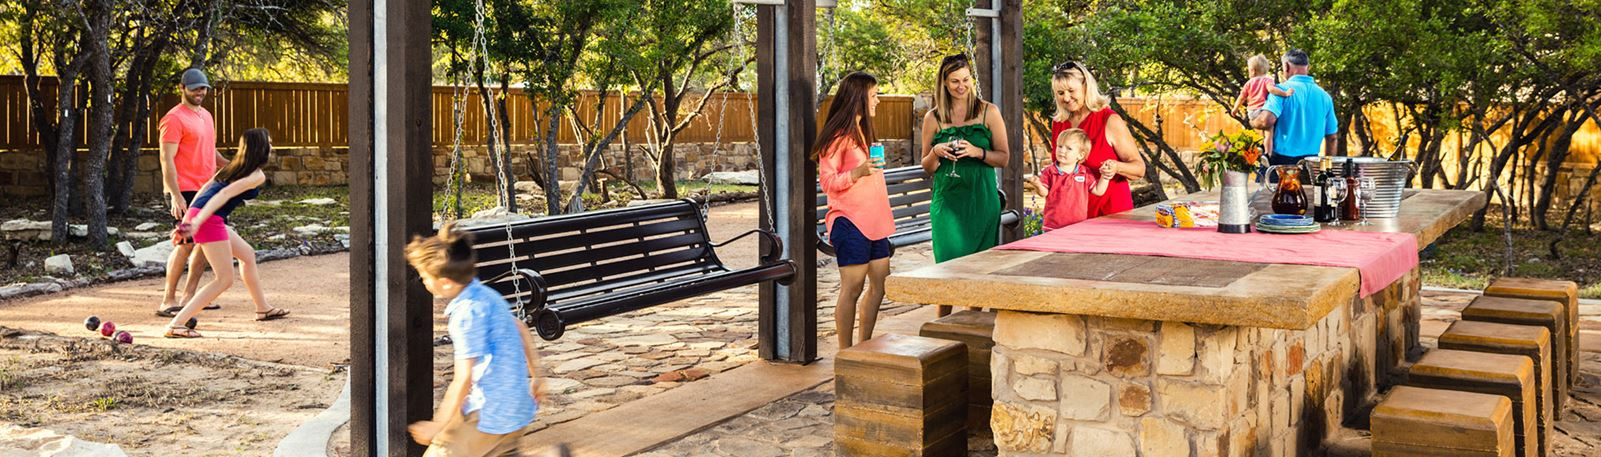 Rancho Sienna Outdoor Dining Room